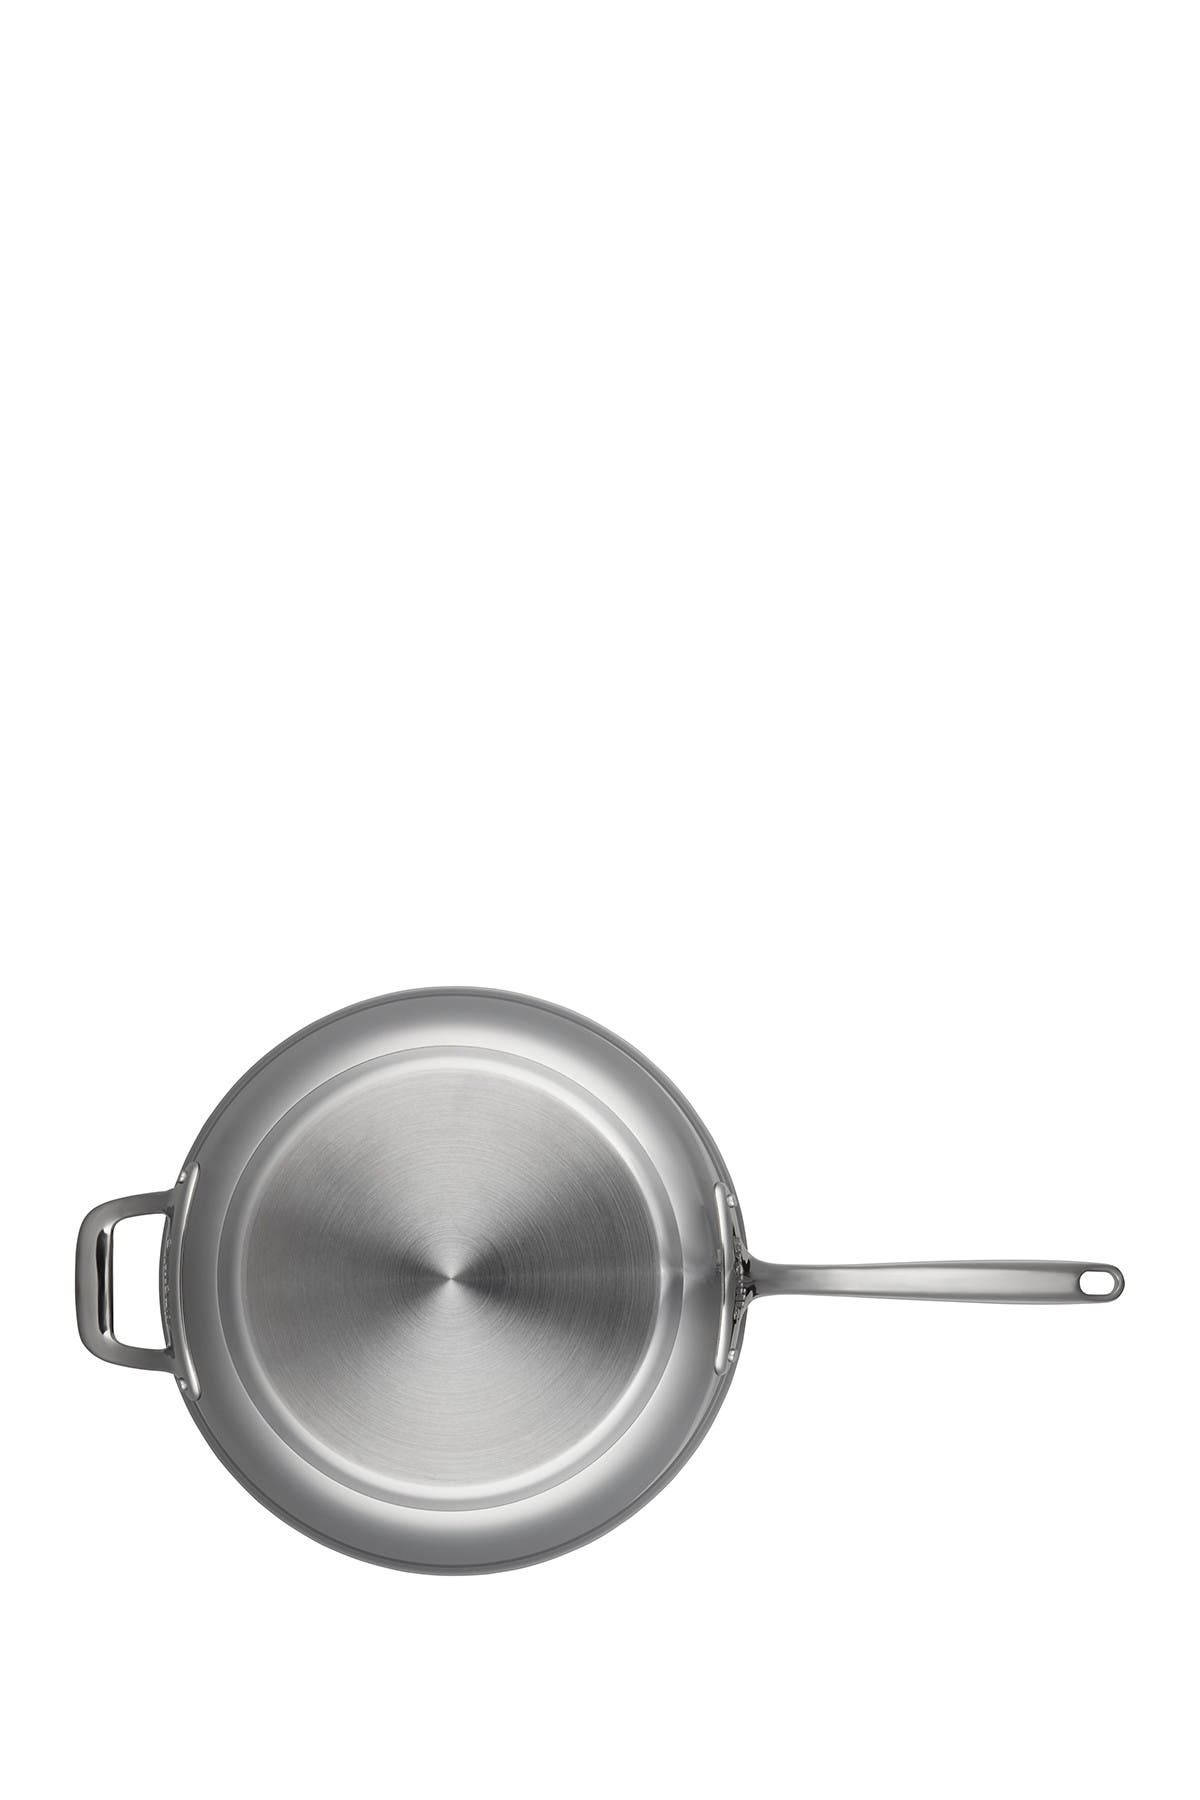 """Image of Breville Thermo Pro Clad 12.5"""" Open Skillet"""